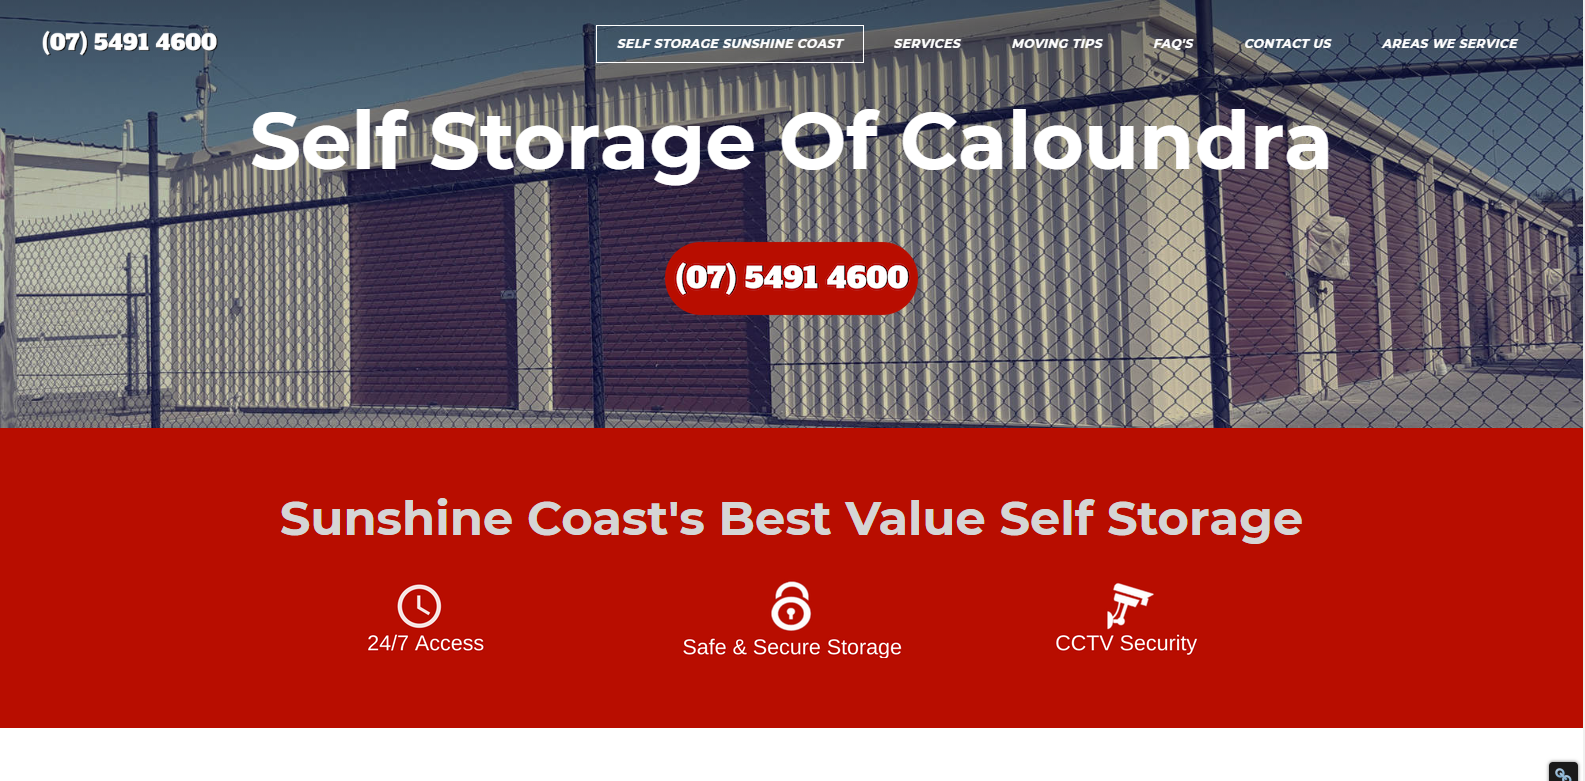 Web Design Self Storage Of Caloundra